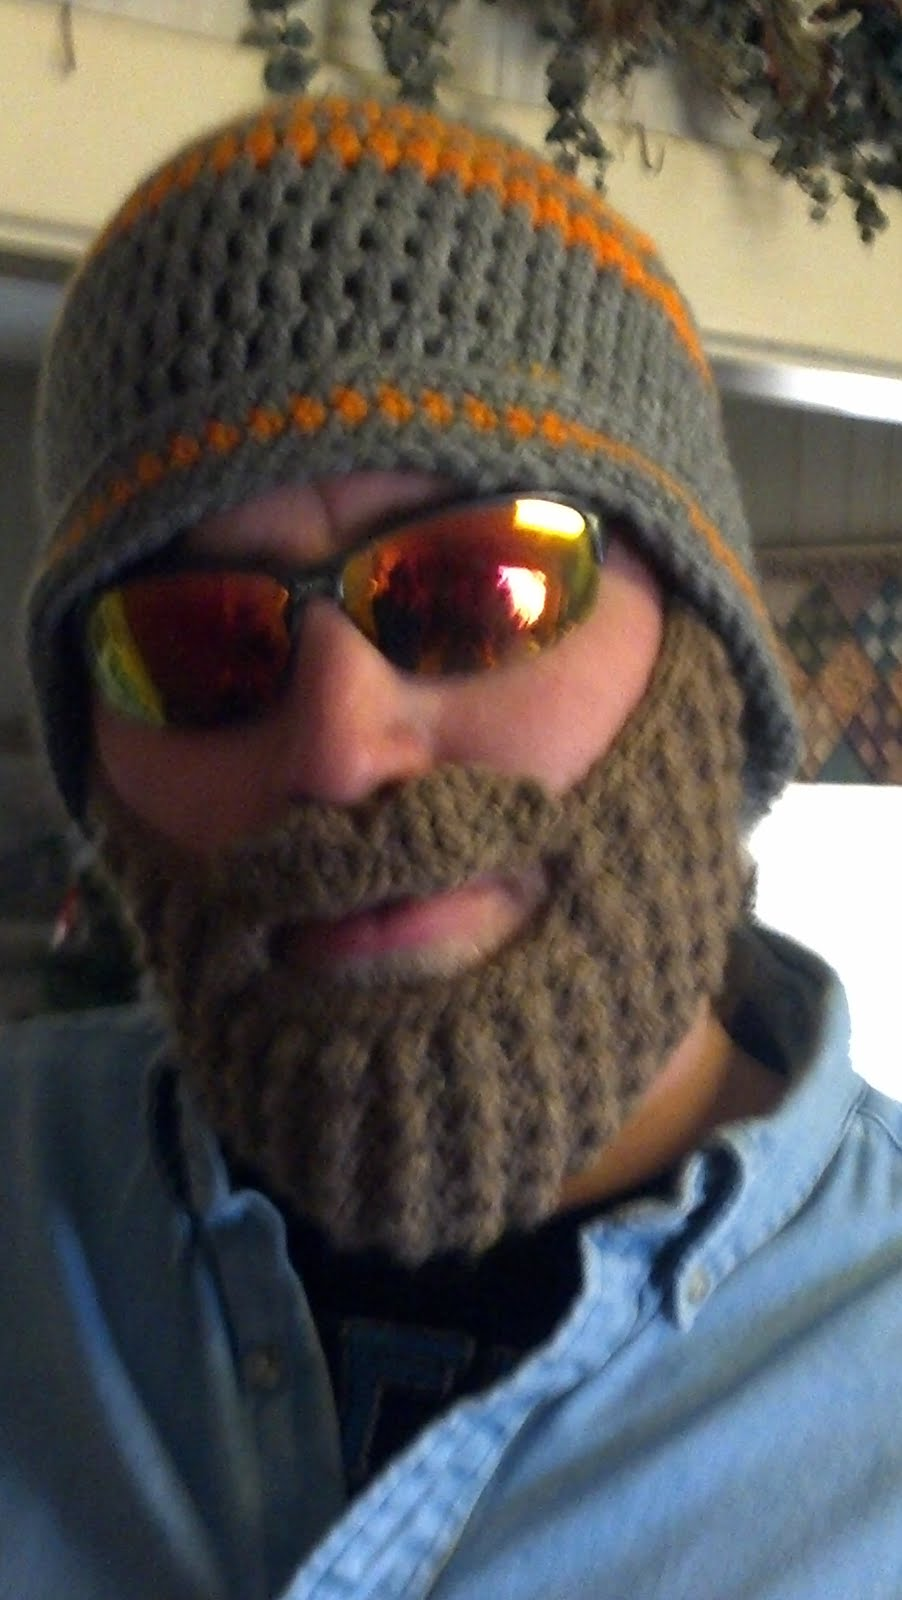 25bee418ea0bd Have you seen those crazy crocheted beard hats that are becoming popular on  the internets  My brother-in-law asked if I could make him one this  Christmas.